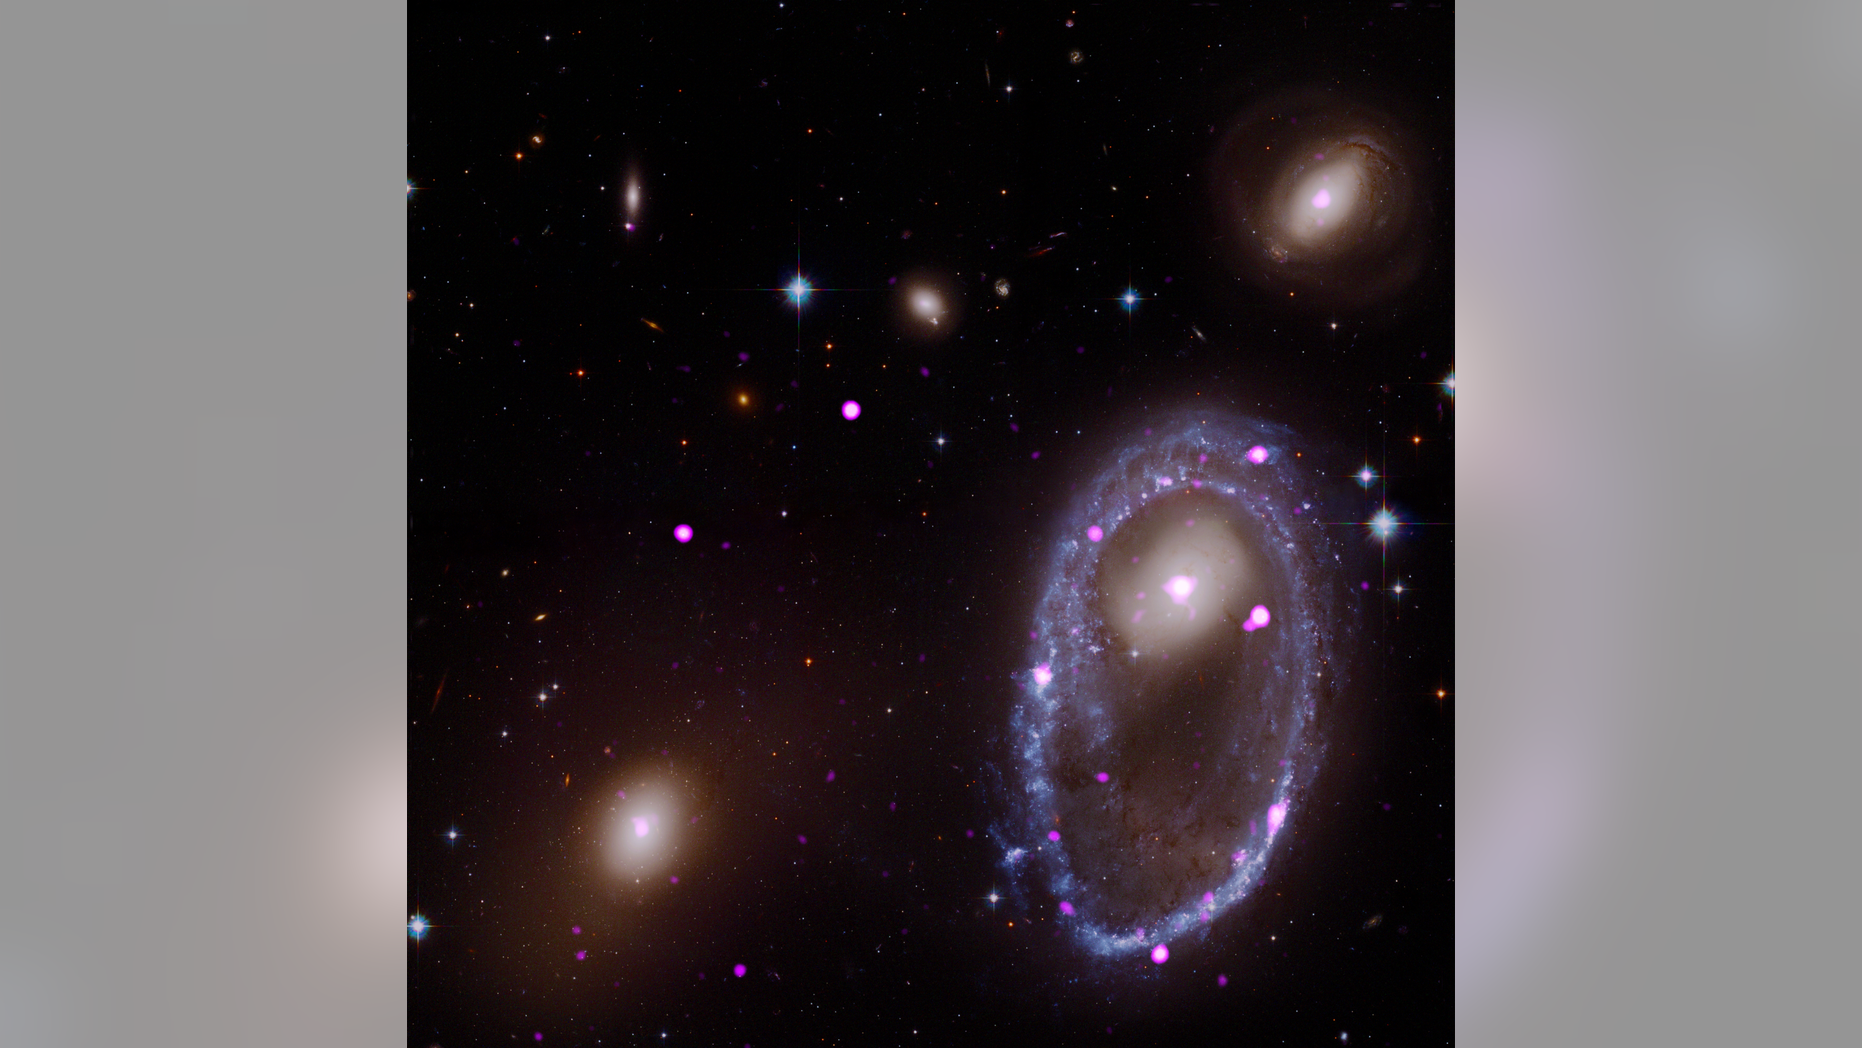 A composite image of the ring galaxy AM 0644-741. The image includes X-ray data from the Chandra X-ray Observatory (purple) and optical data from NASA's Hubble Space Telescope (red, green and blue). The galaxy AM 0644 is located in the lower right.